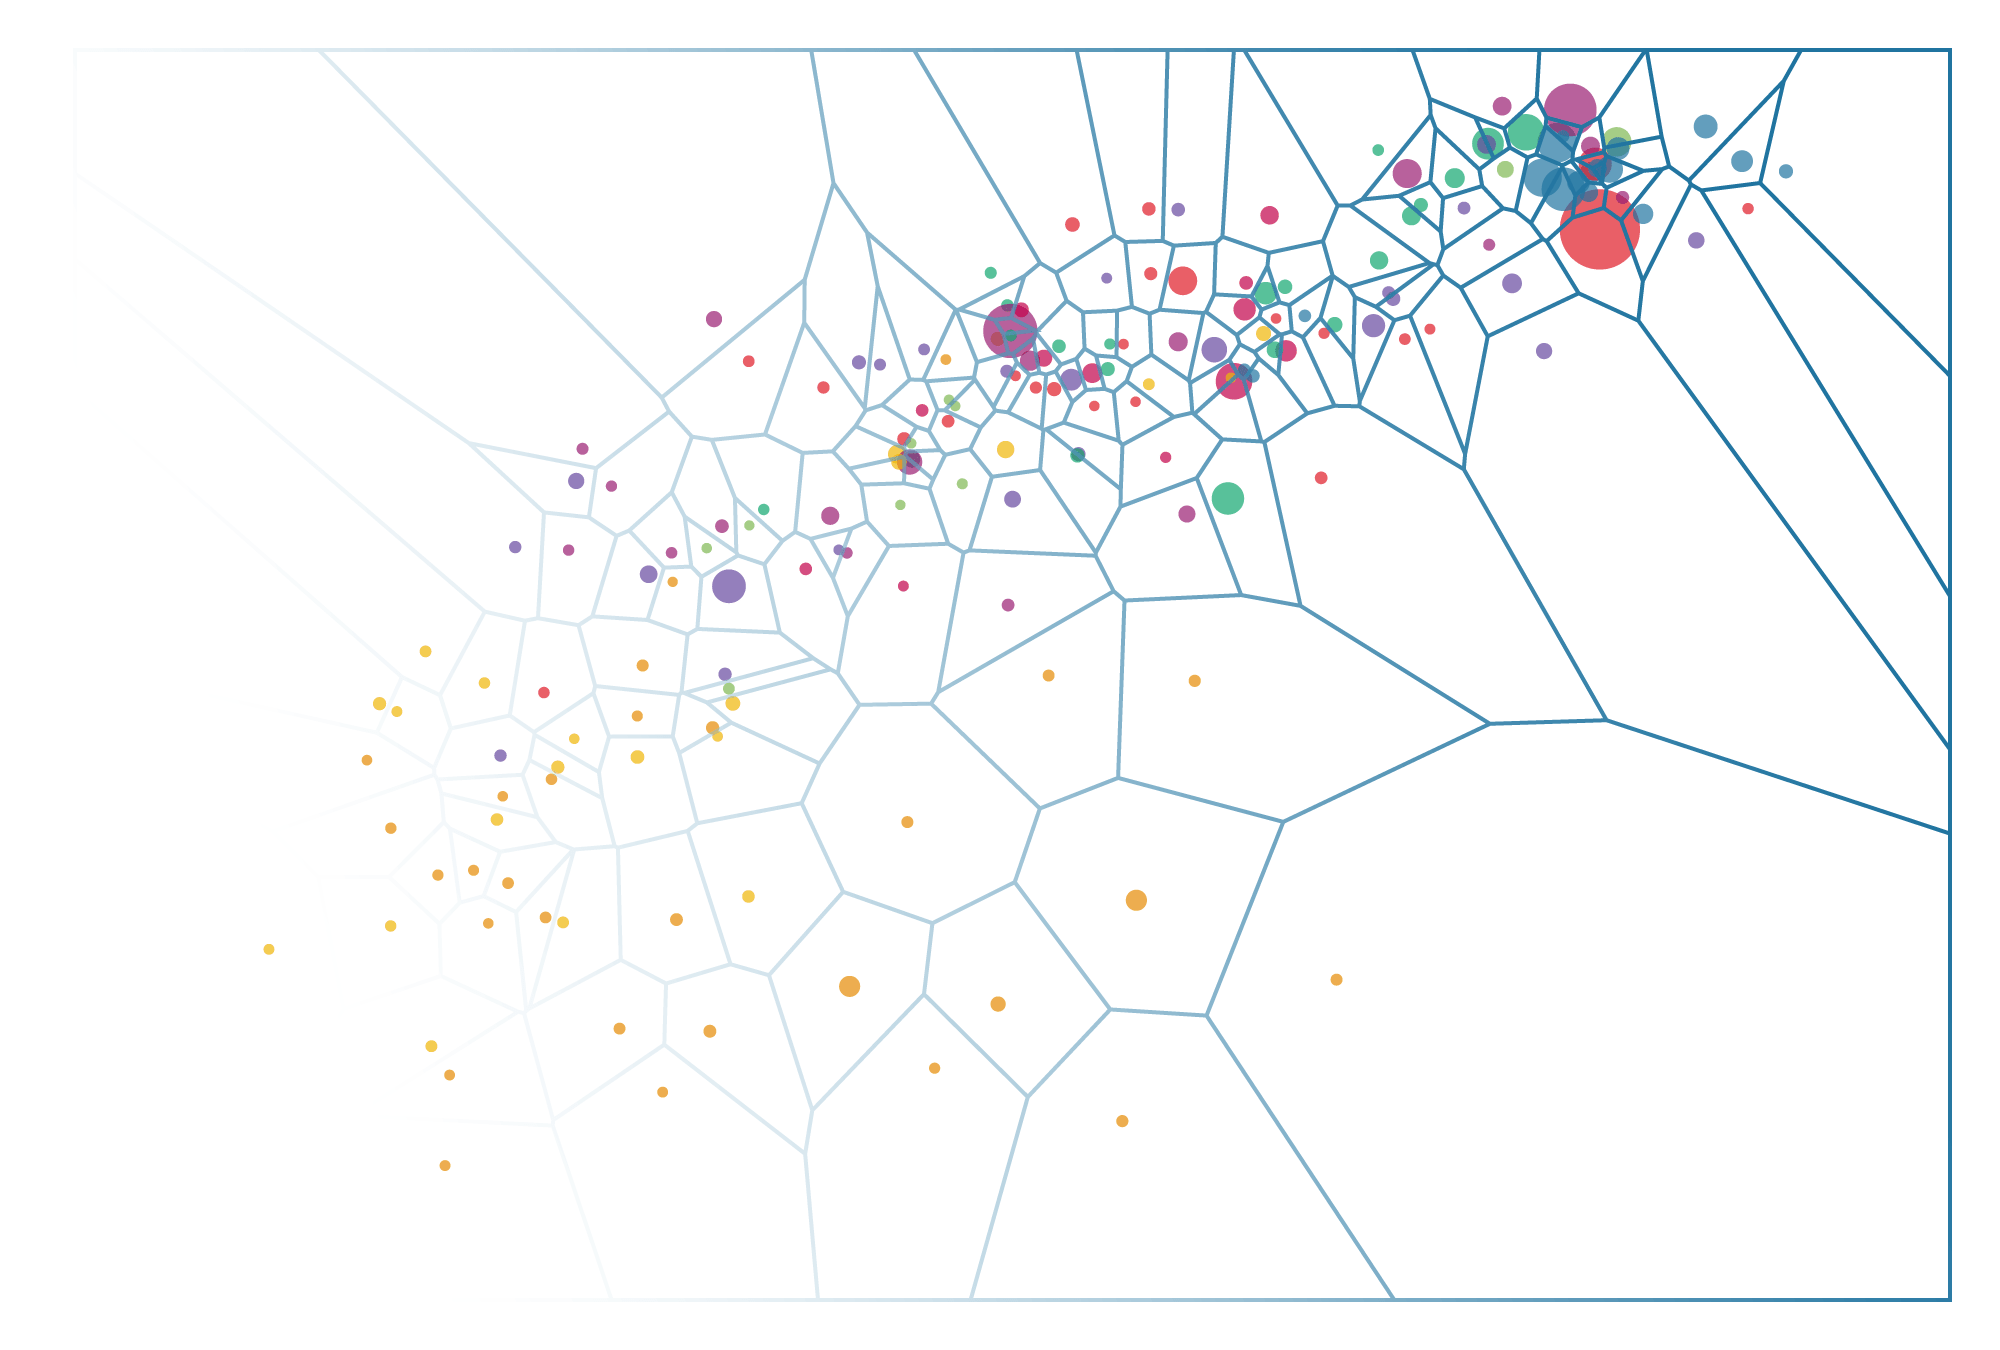 The scatterplot circles with the voronoi grid fading over it